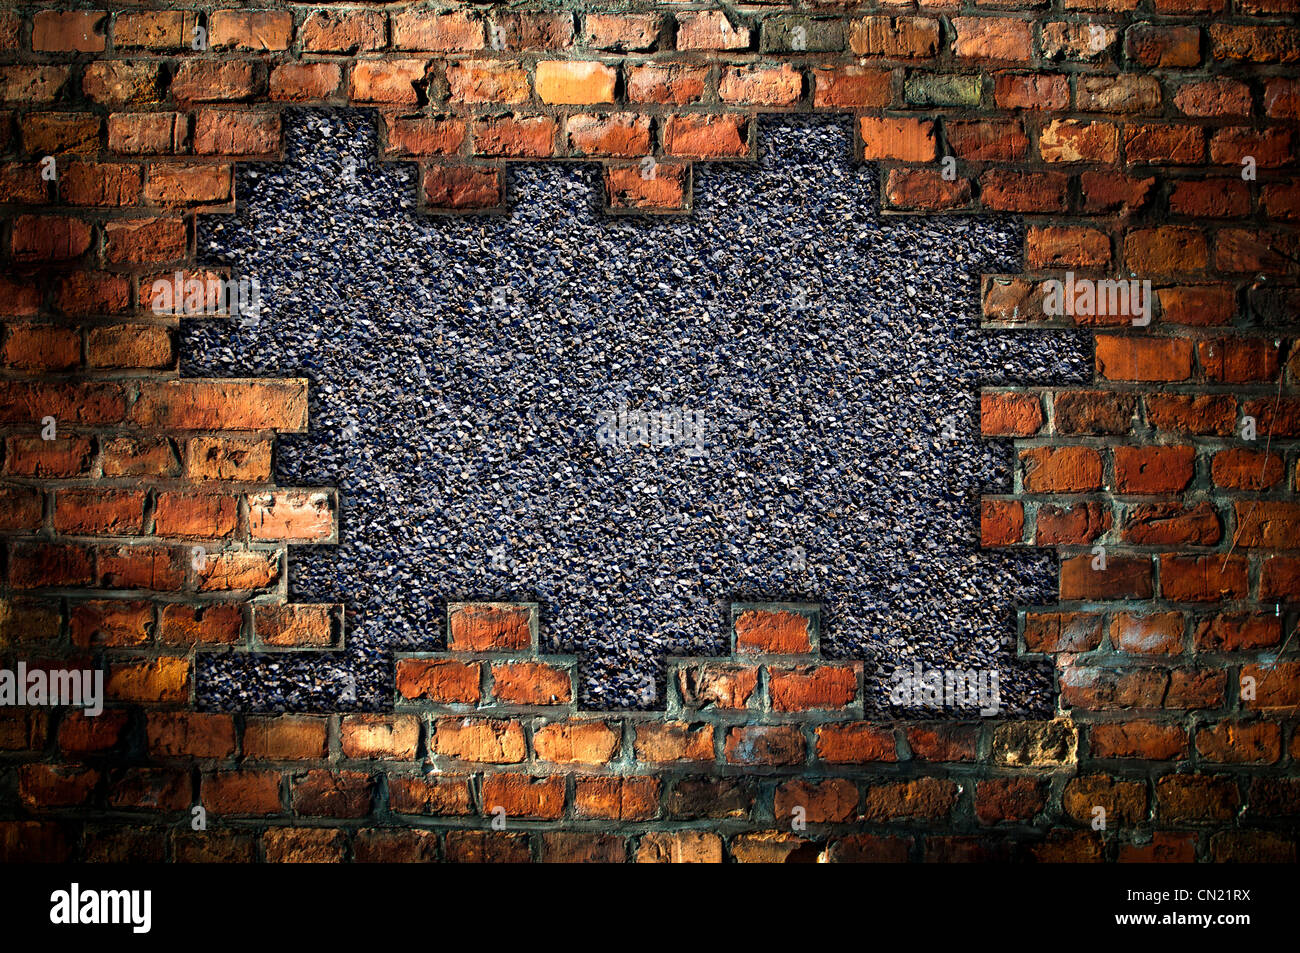 Black Hole Live Wallpaper Hole In An Old Brick Wall Background Stock Photo